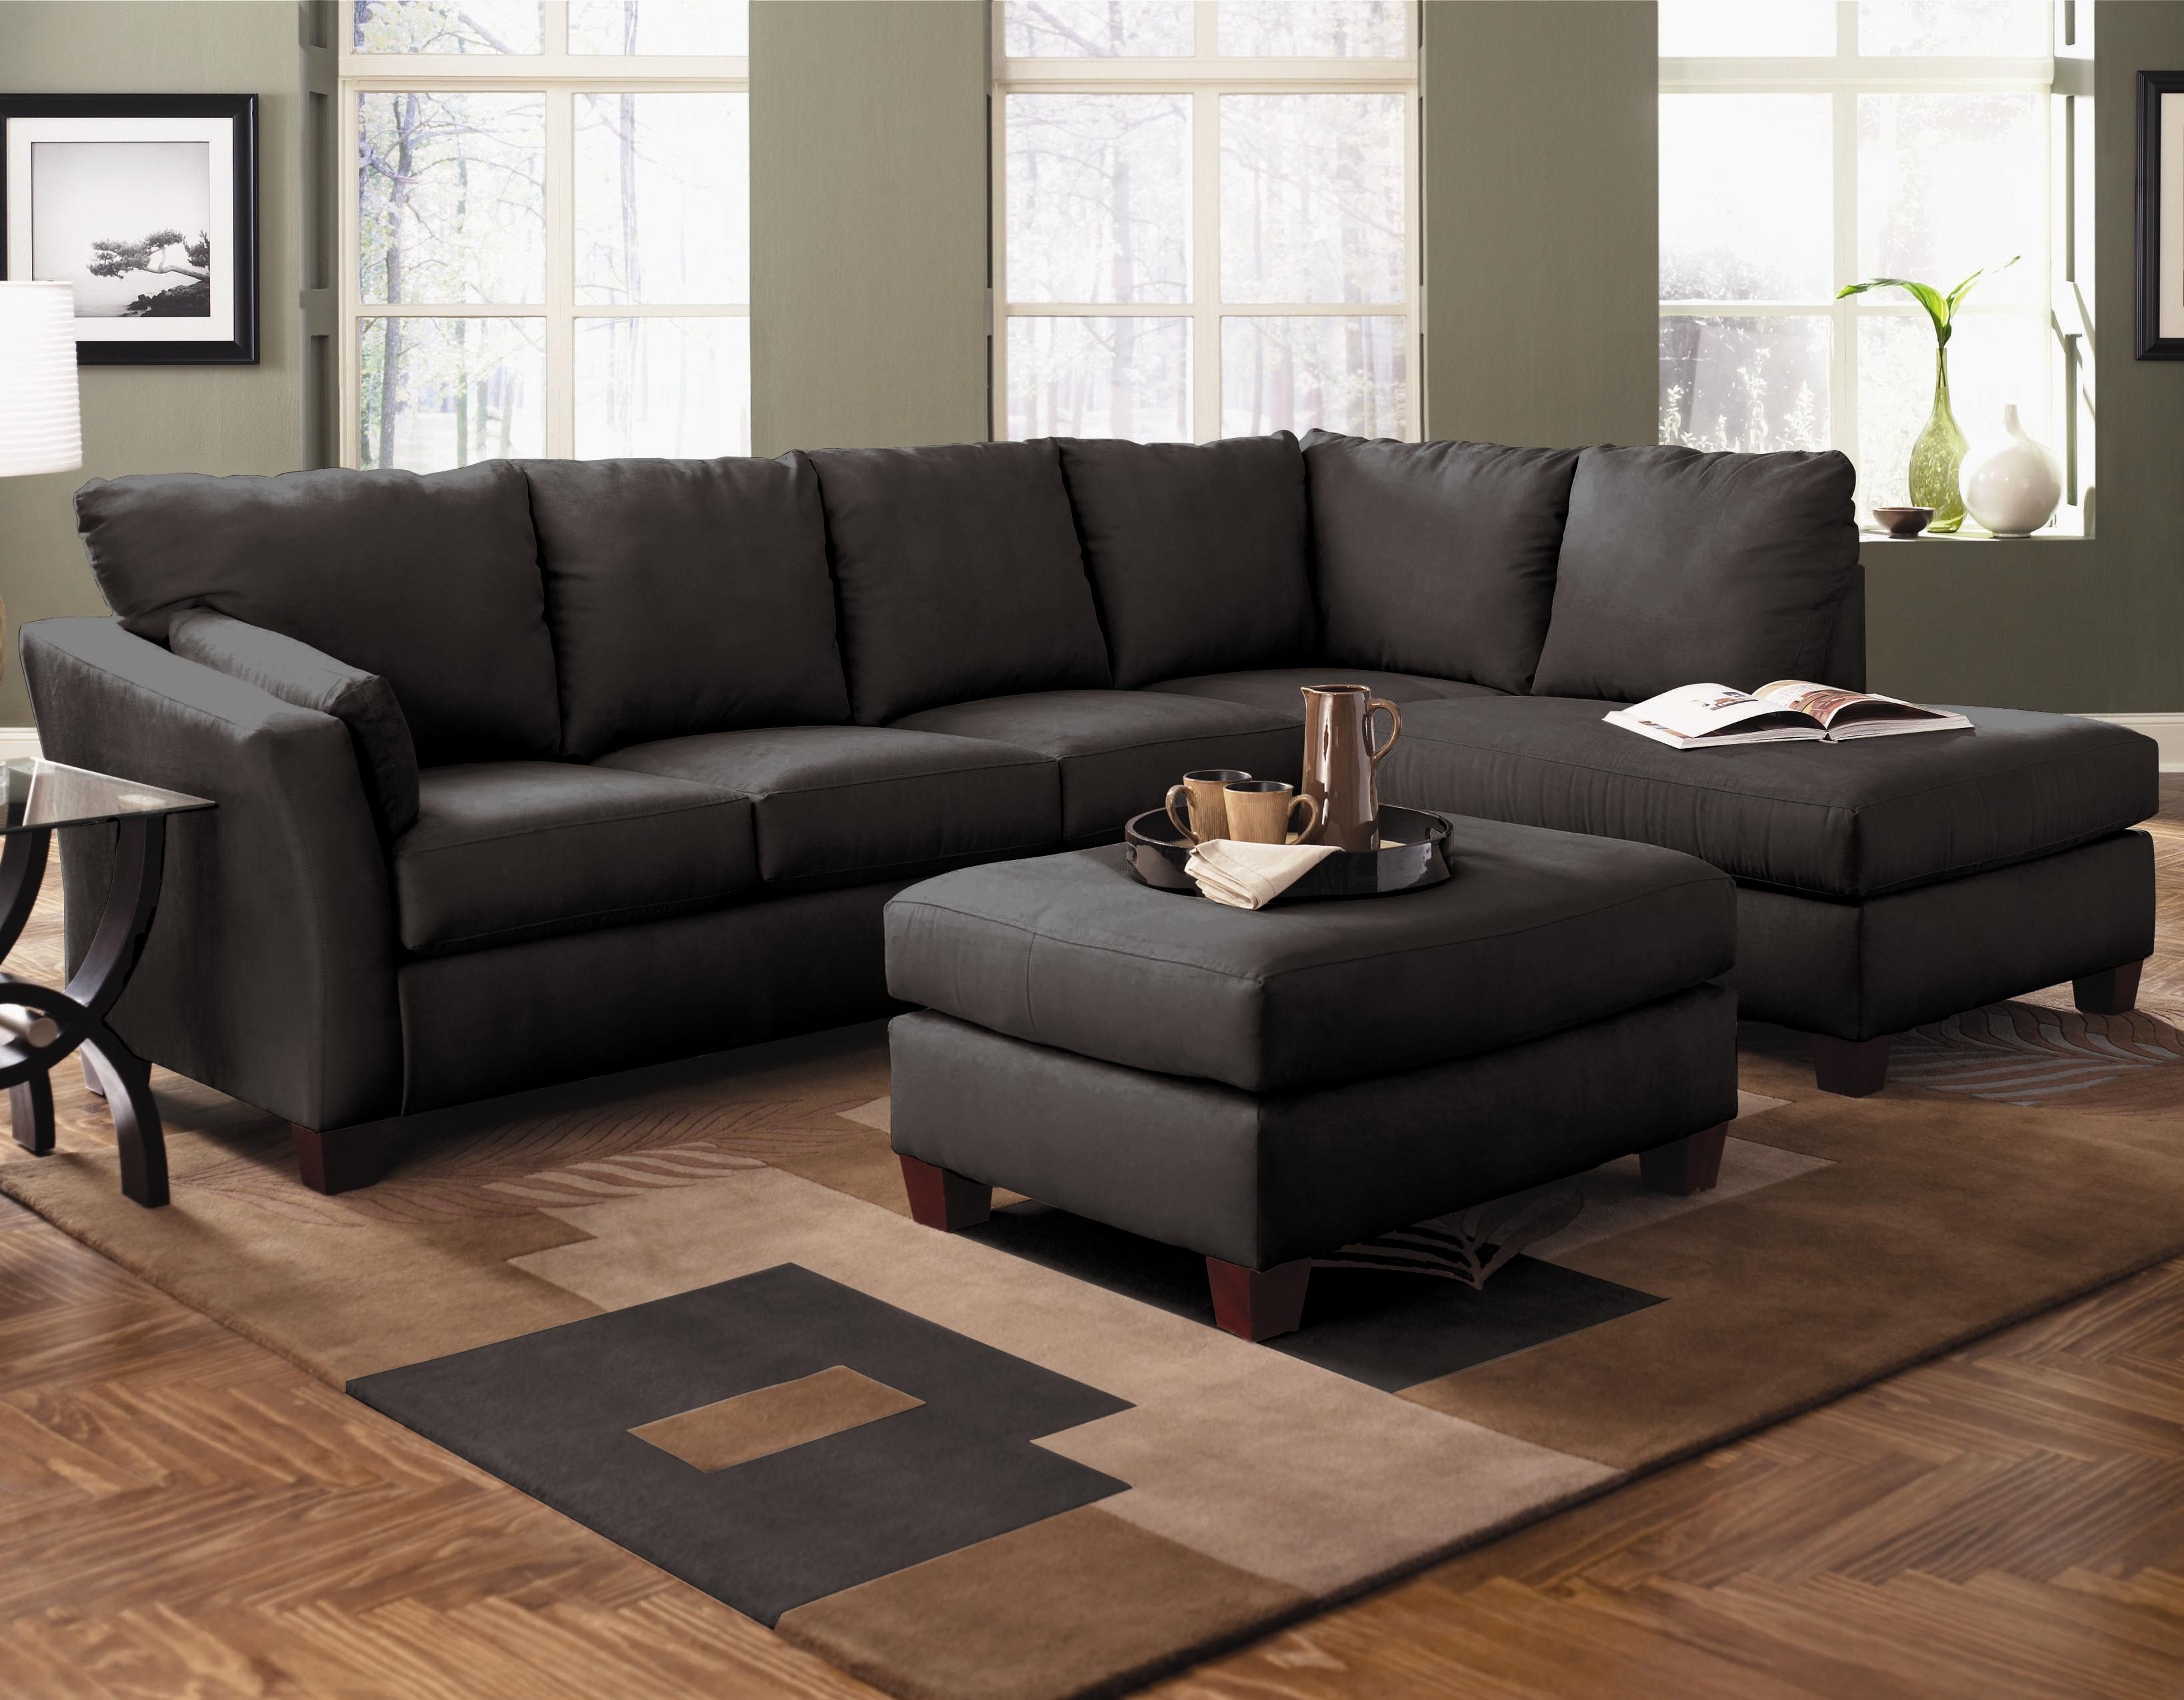 two piece sectional sofa with chaise affordable furniture. Black Bedroom Furniture Sets. Home Design Ideas